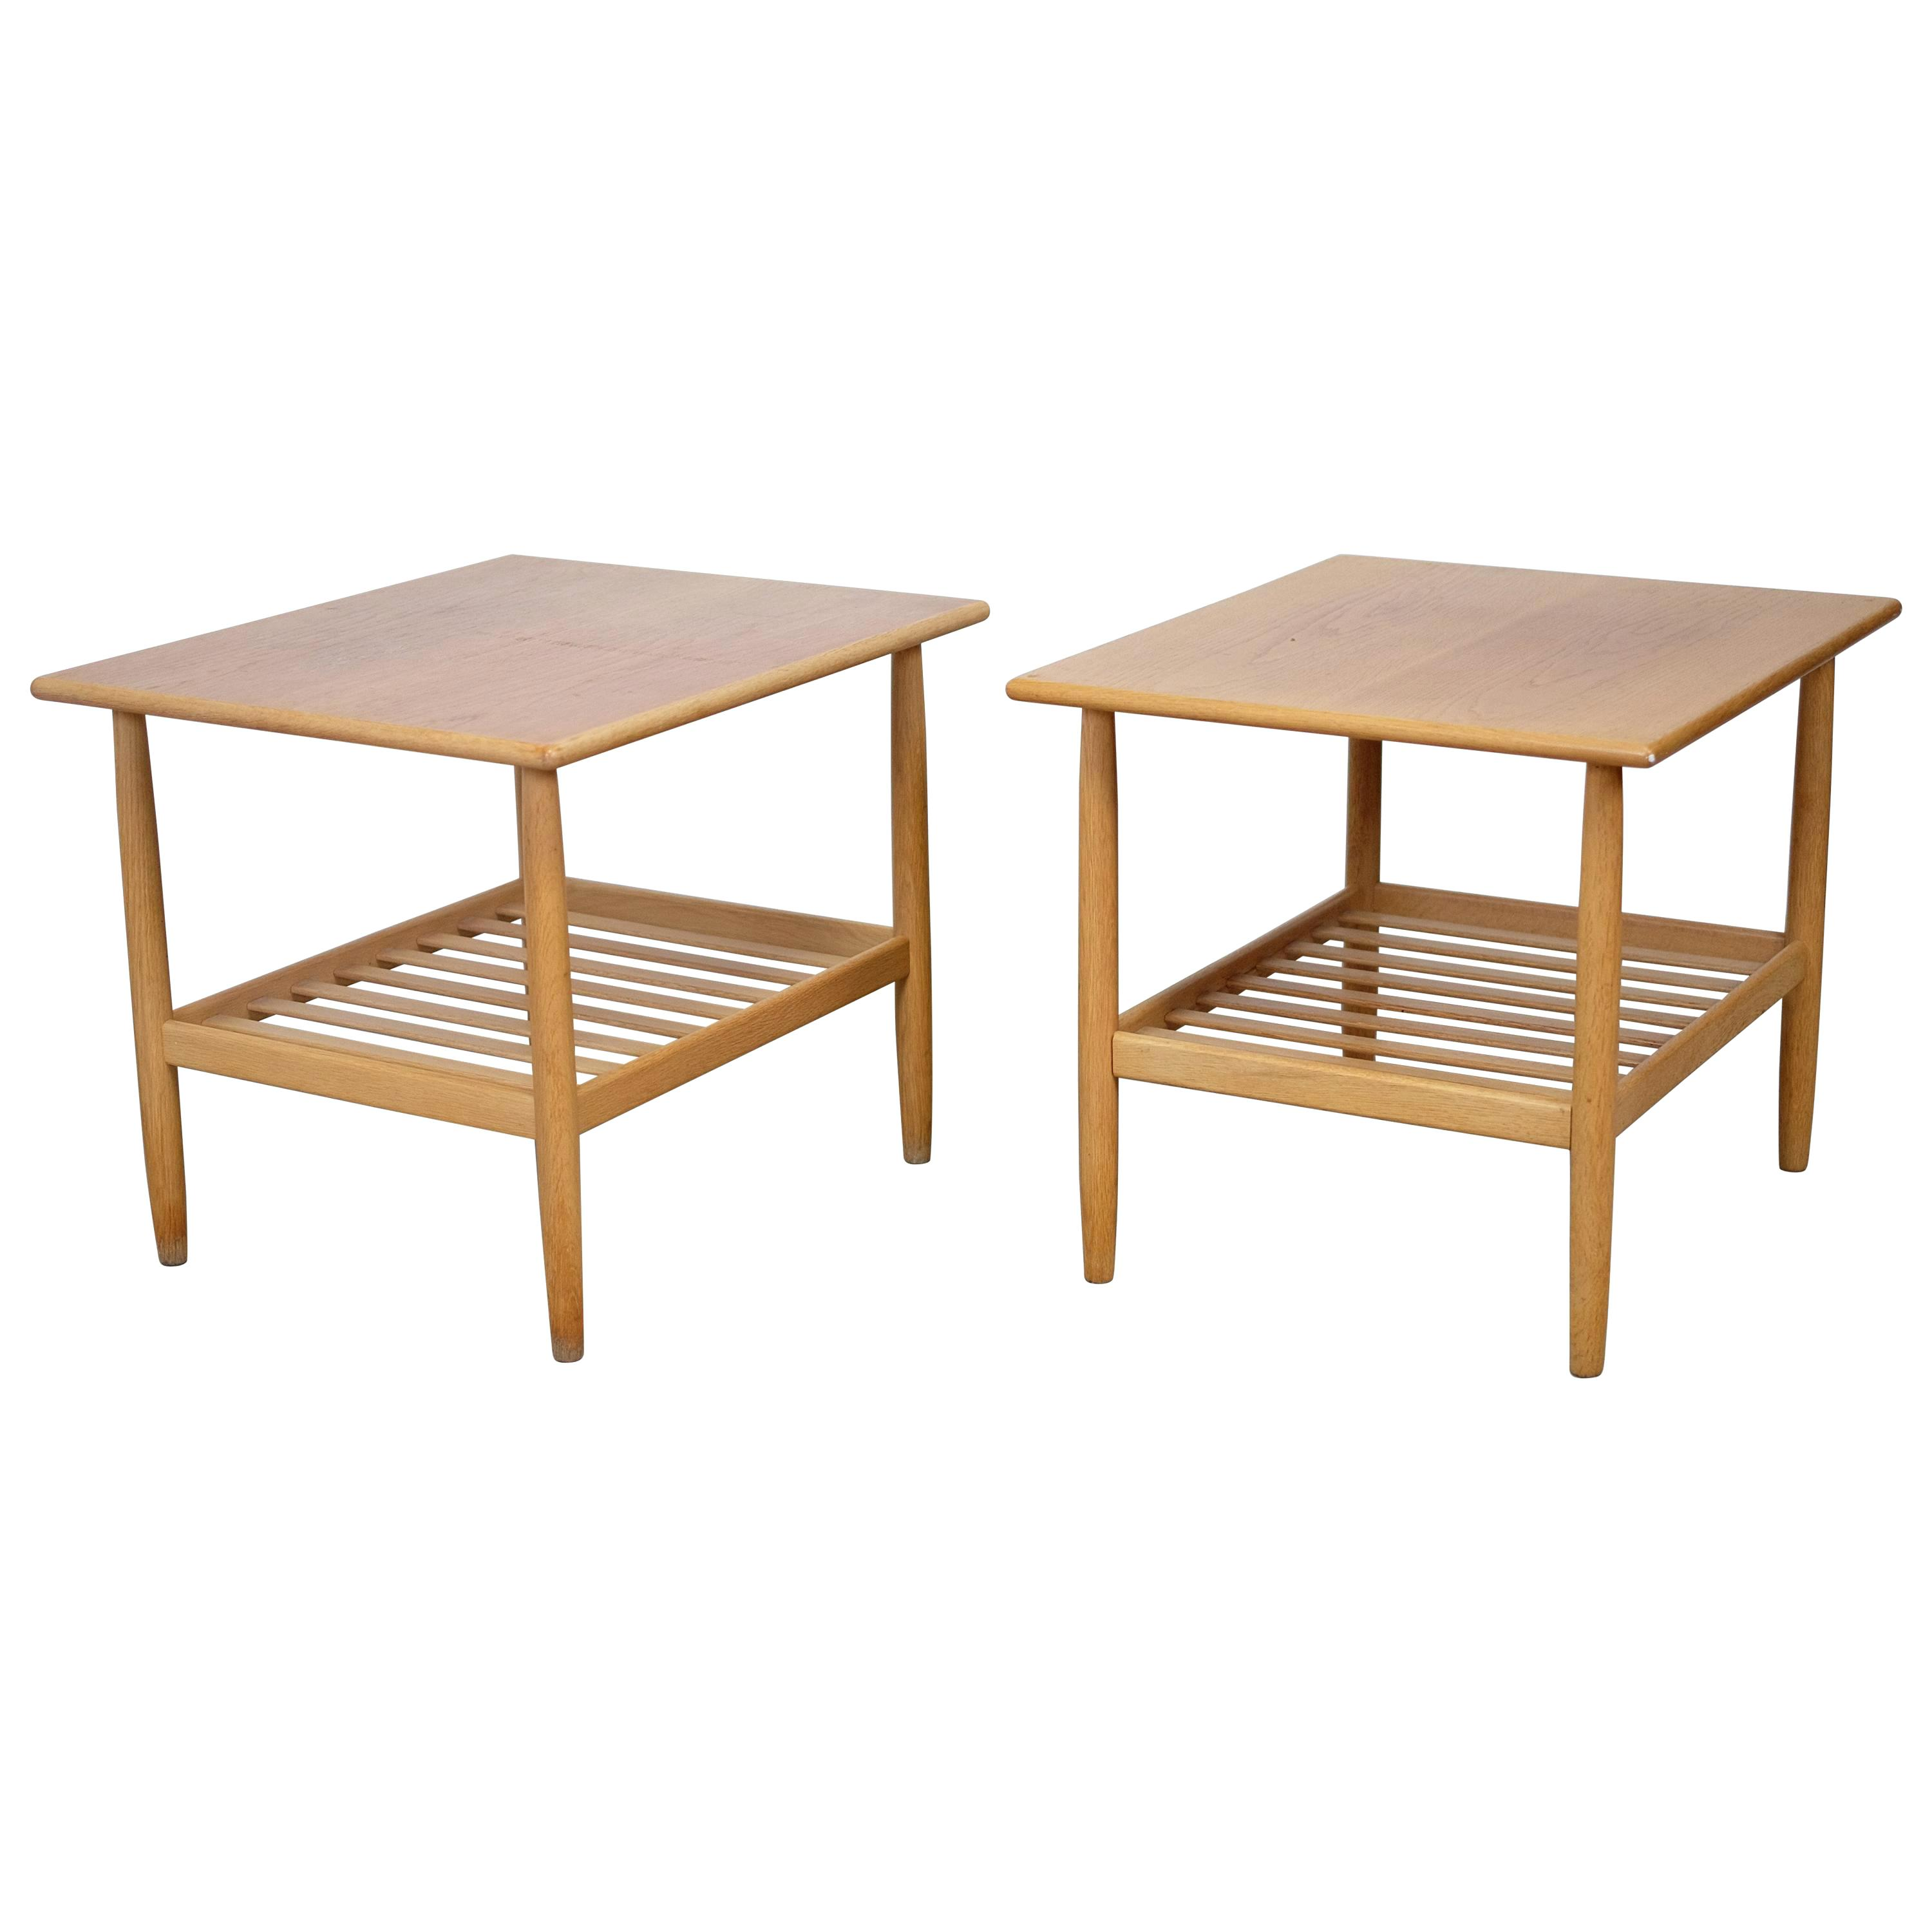 two side table tone chair end with drawer pair tables oak for antique outdoor kmart mirrored target inch round plastic tablecloths ryobi foot trestle dark coffee black wrought